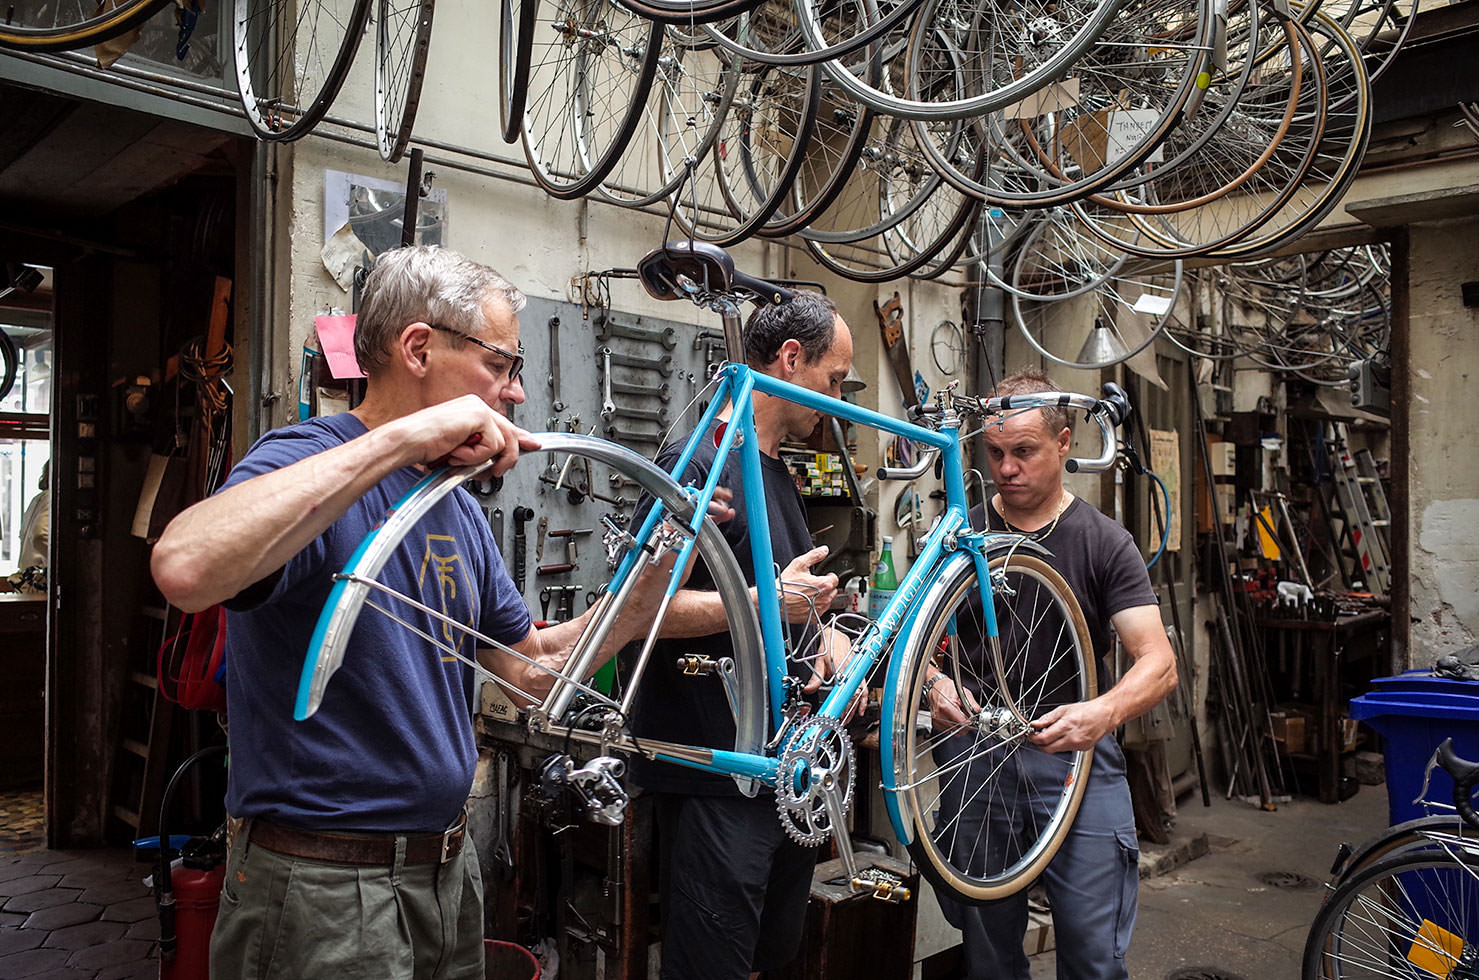 Meeting the great constructeurs. Here with J. P. Weigle at Cycles Alex Singer in France, working with Olivier Csuka on the bike for the 2017 Concours de Machines Technical Trials. (Photo: Natsuko Hirose)